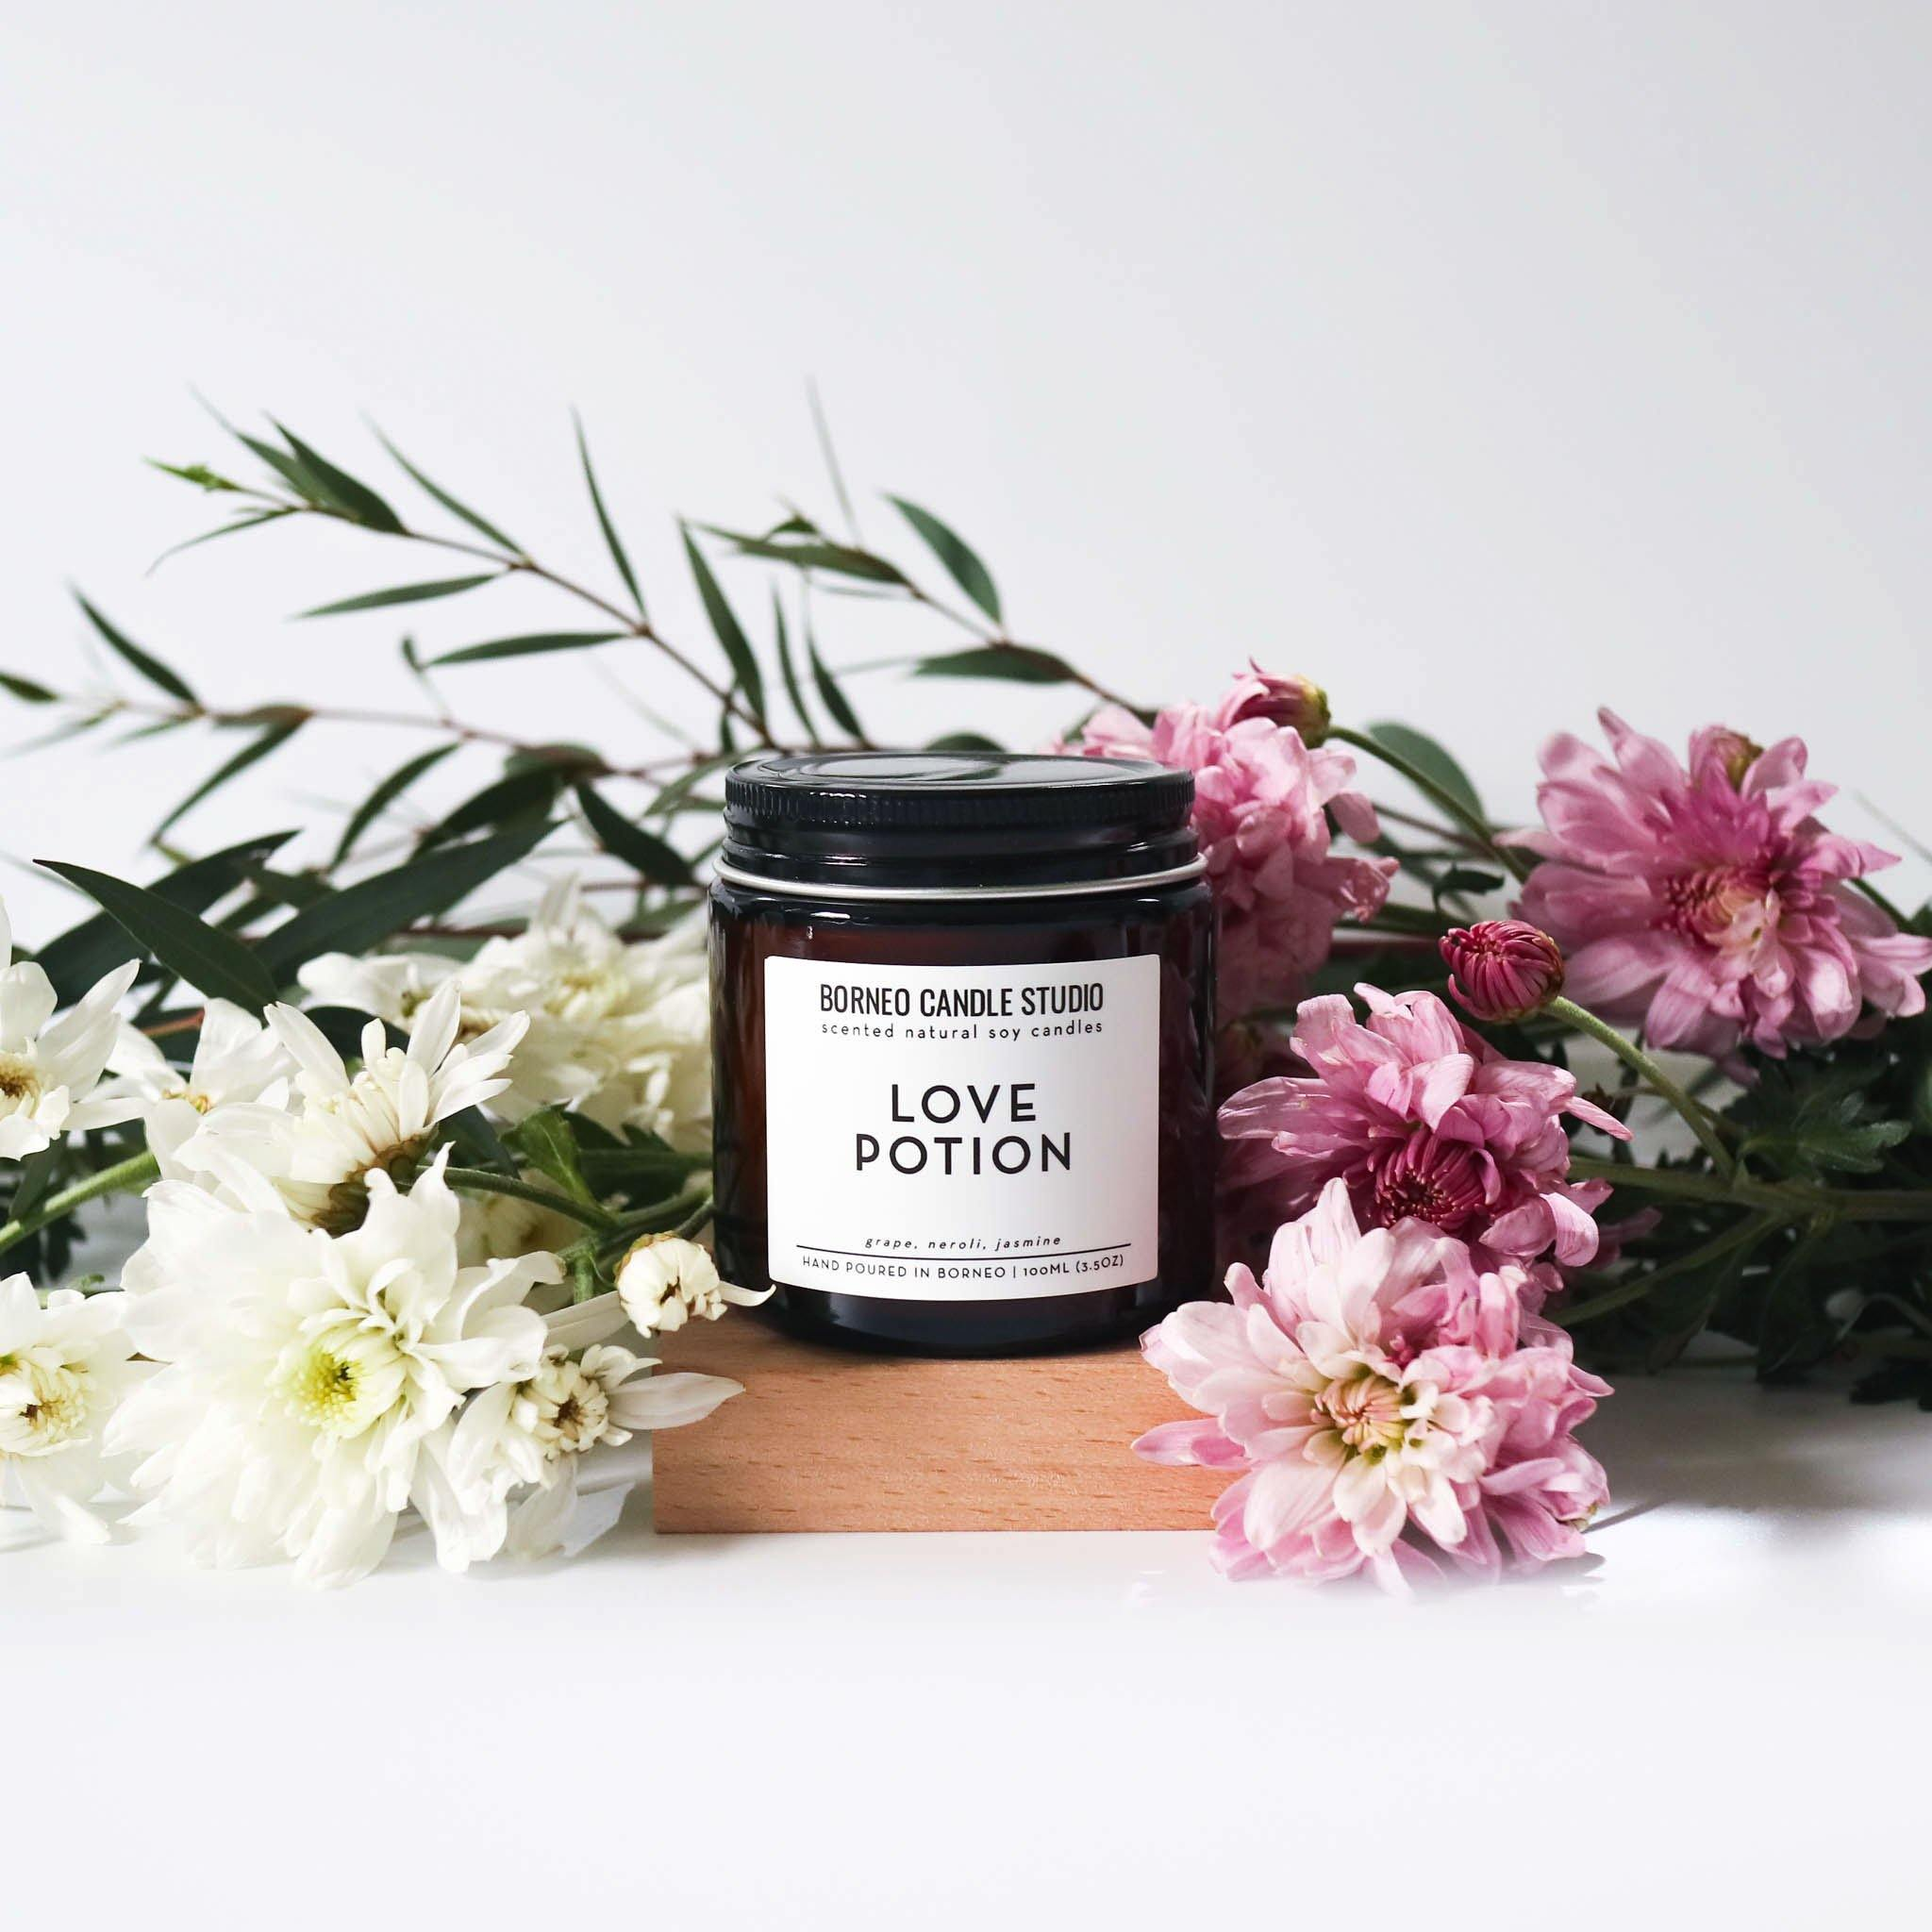 Love Potion Soy Candle - grape, neroli, jasmine Borneo Candle Studio